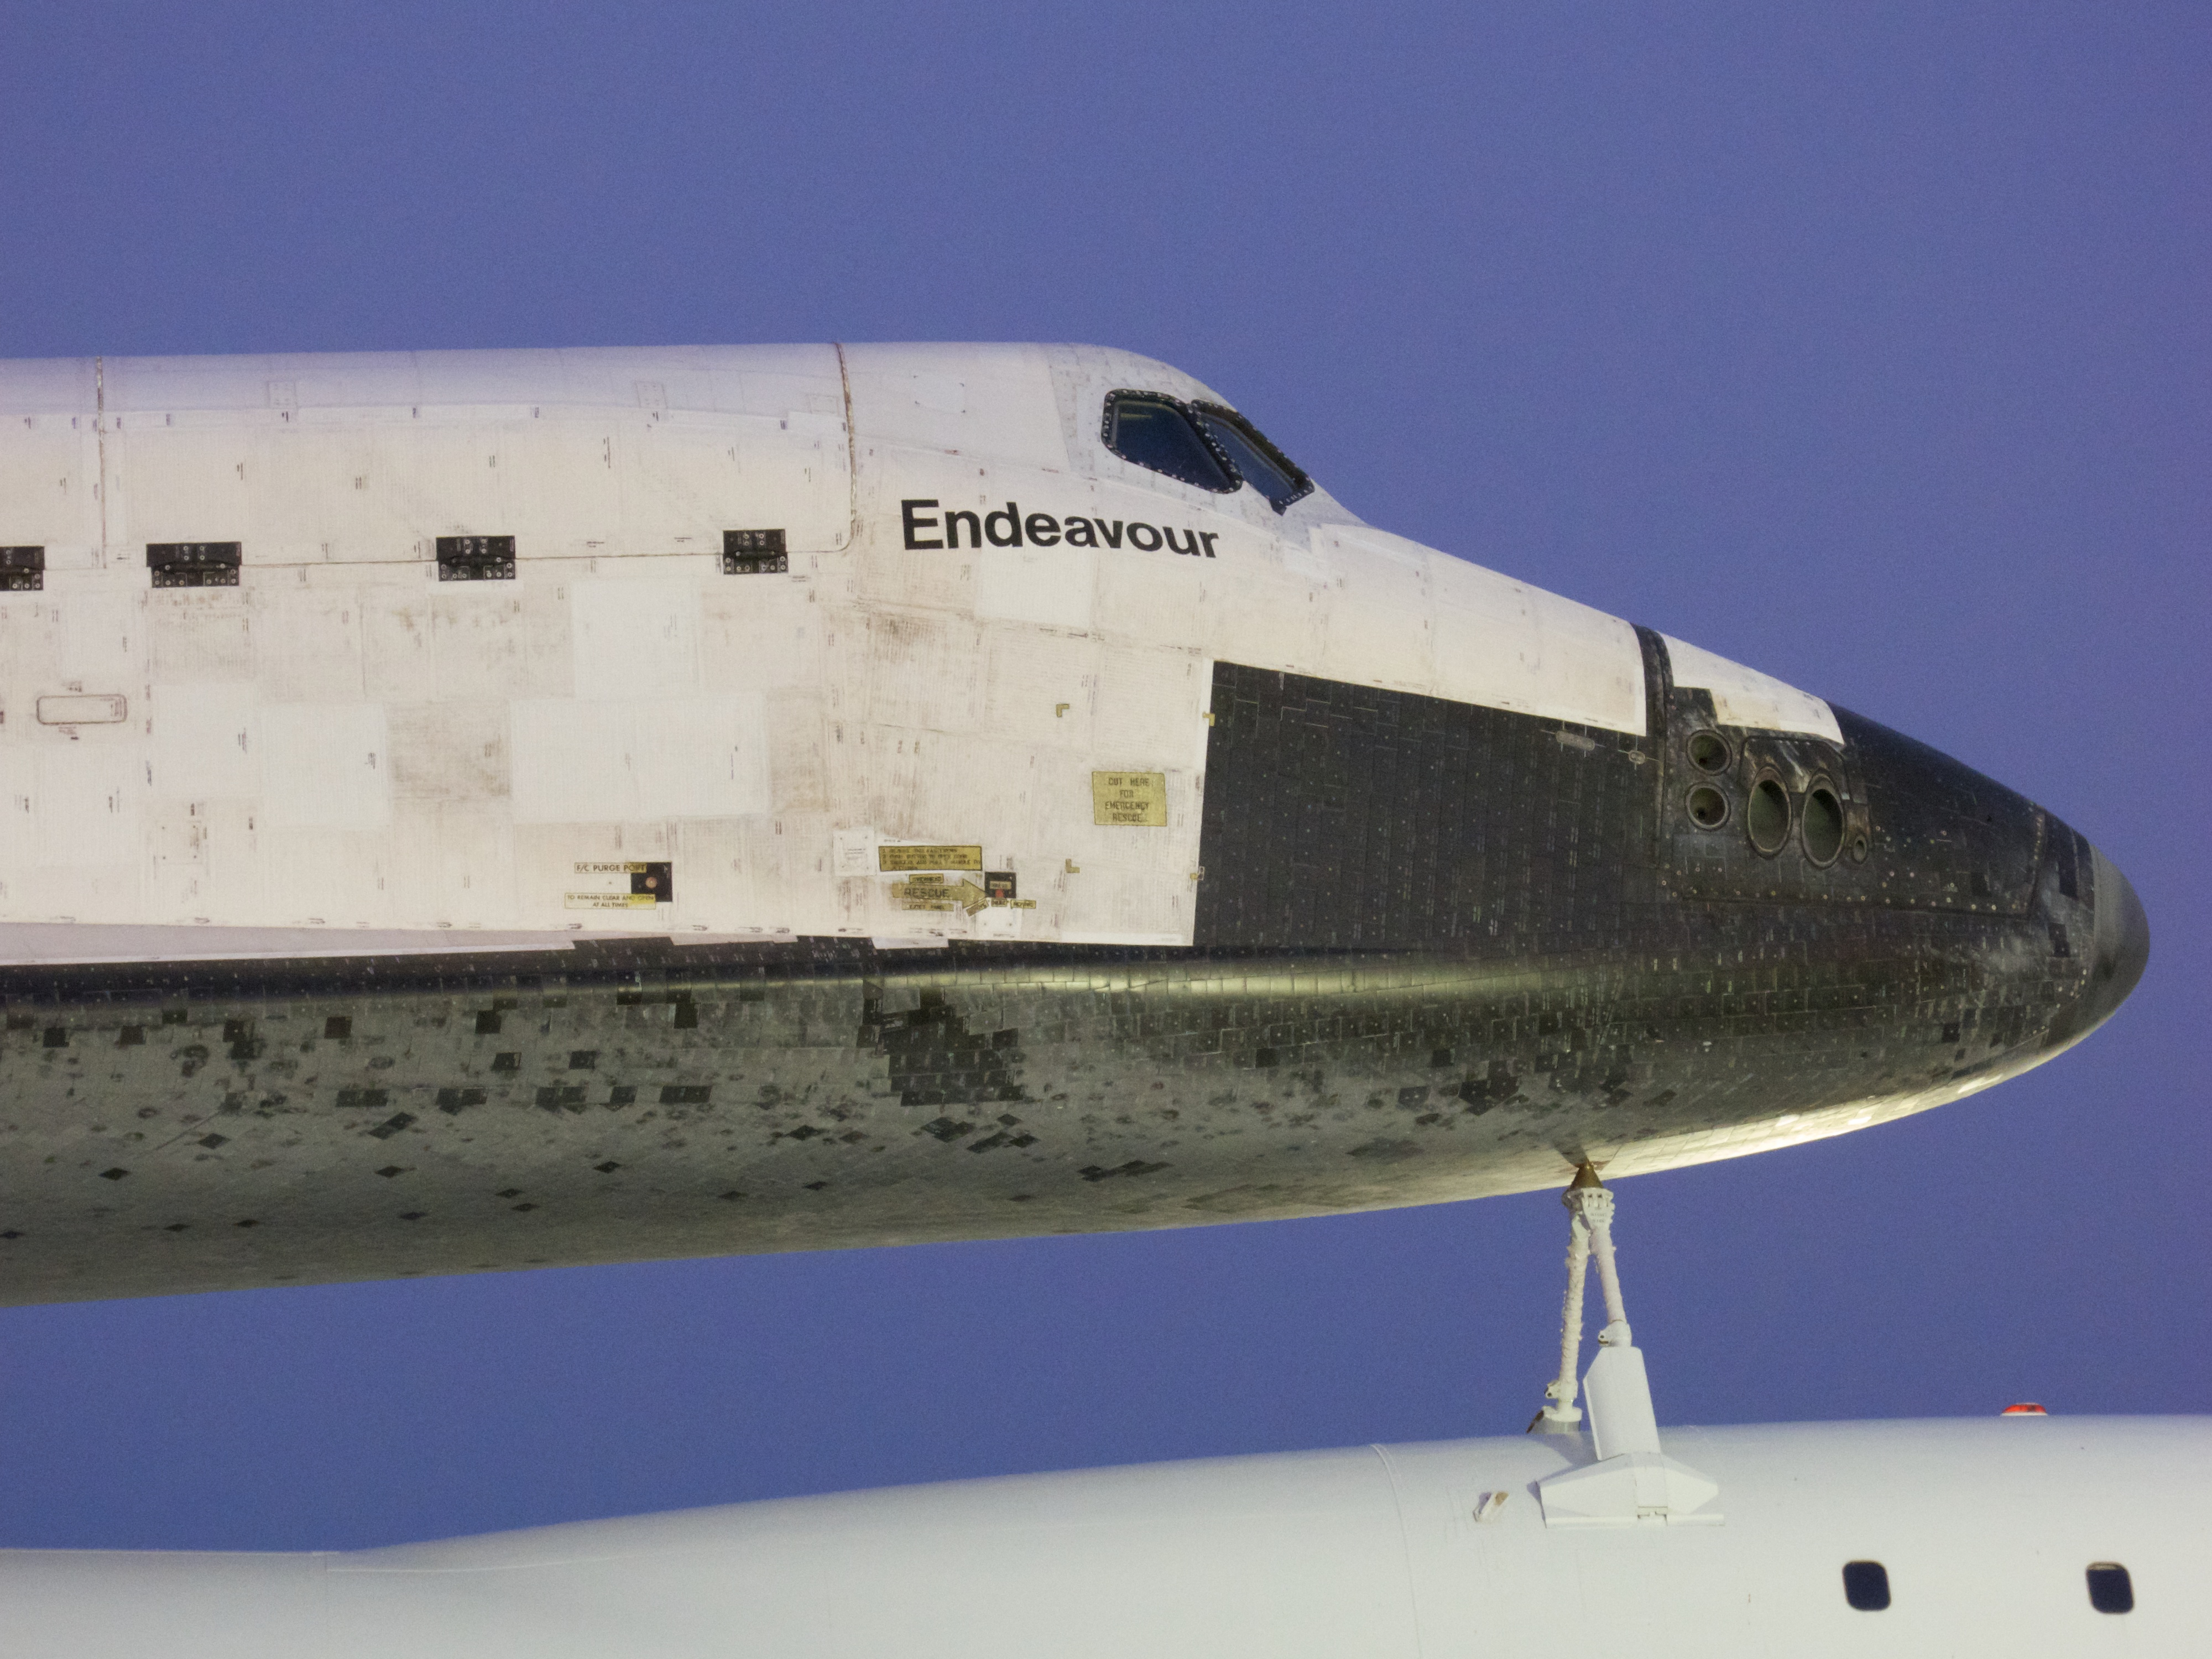 Close view of Endeavour's forward section and flight deck. At full magnification, the caution decals are readable. Each black TPS tile is individually numbered; the numbers are visible but illegible at this distance.